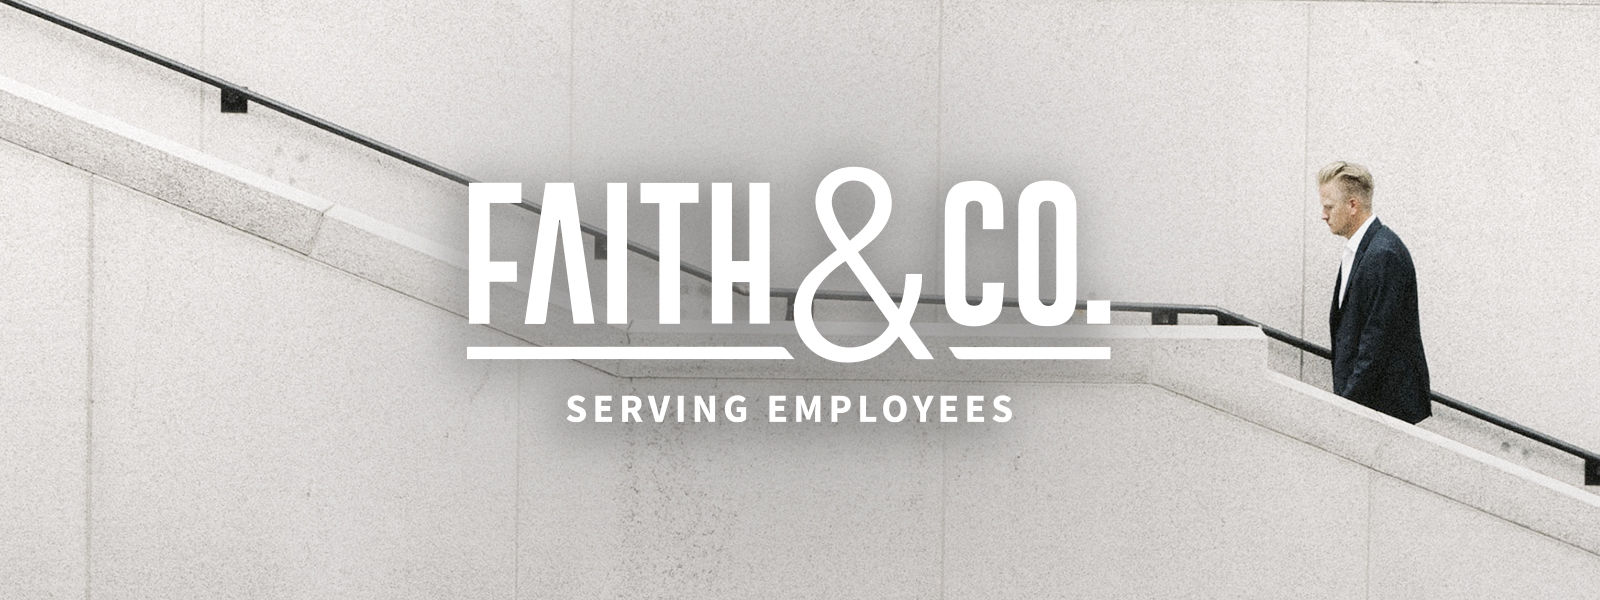 Faith & Co: Serving Employees